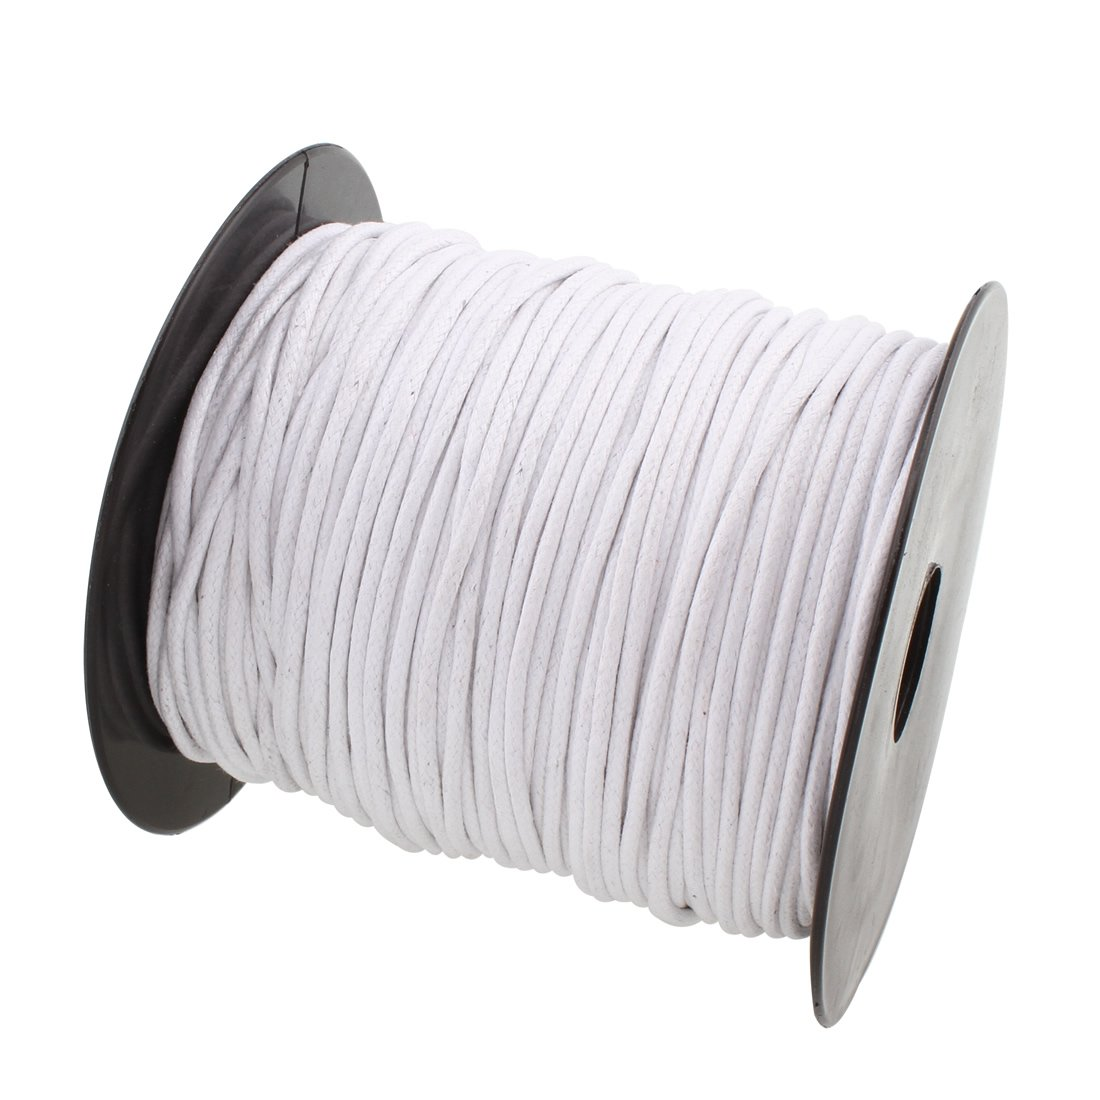 2mm 100Yards Waxed Thread Cotton Cord Plastic Spool String Strap Necklace Rope Bead For Necklace Bracelet DIY Making (Black) Comeon